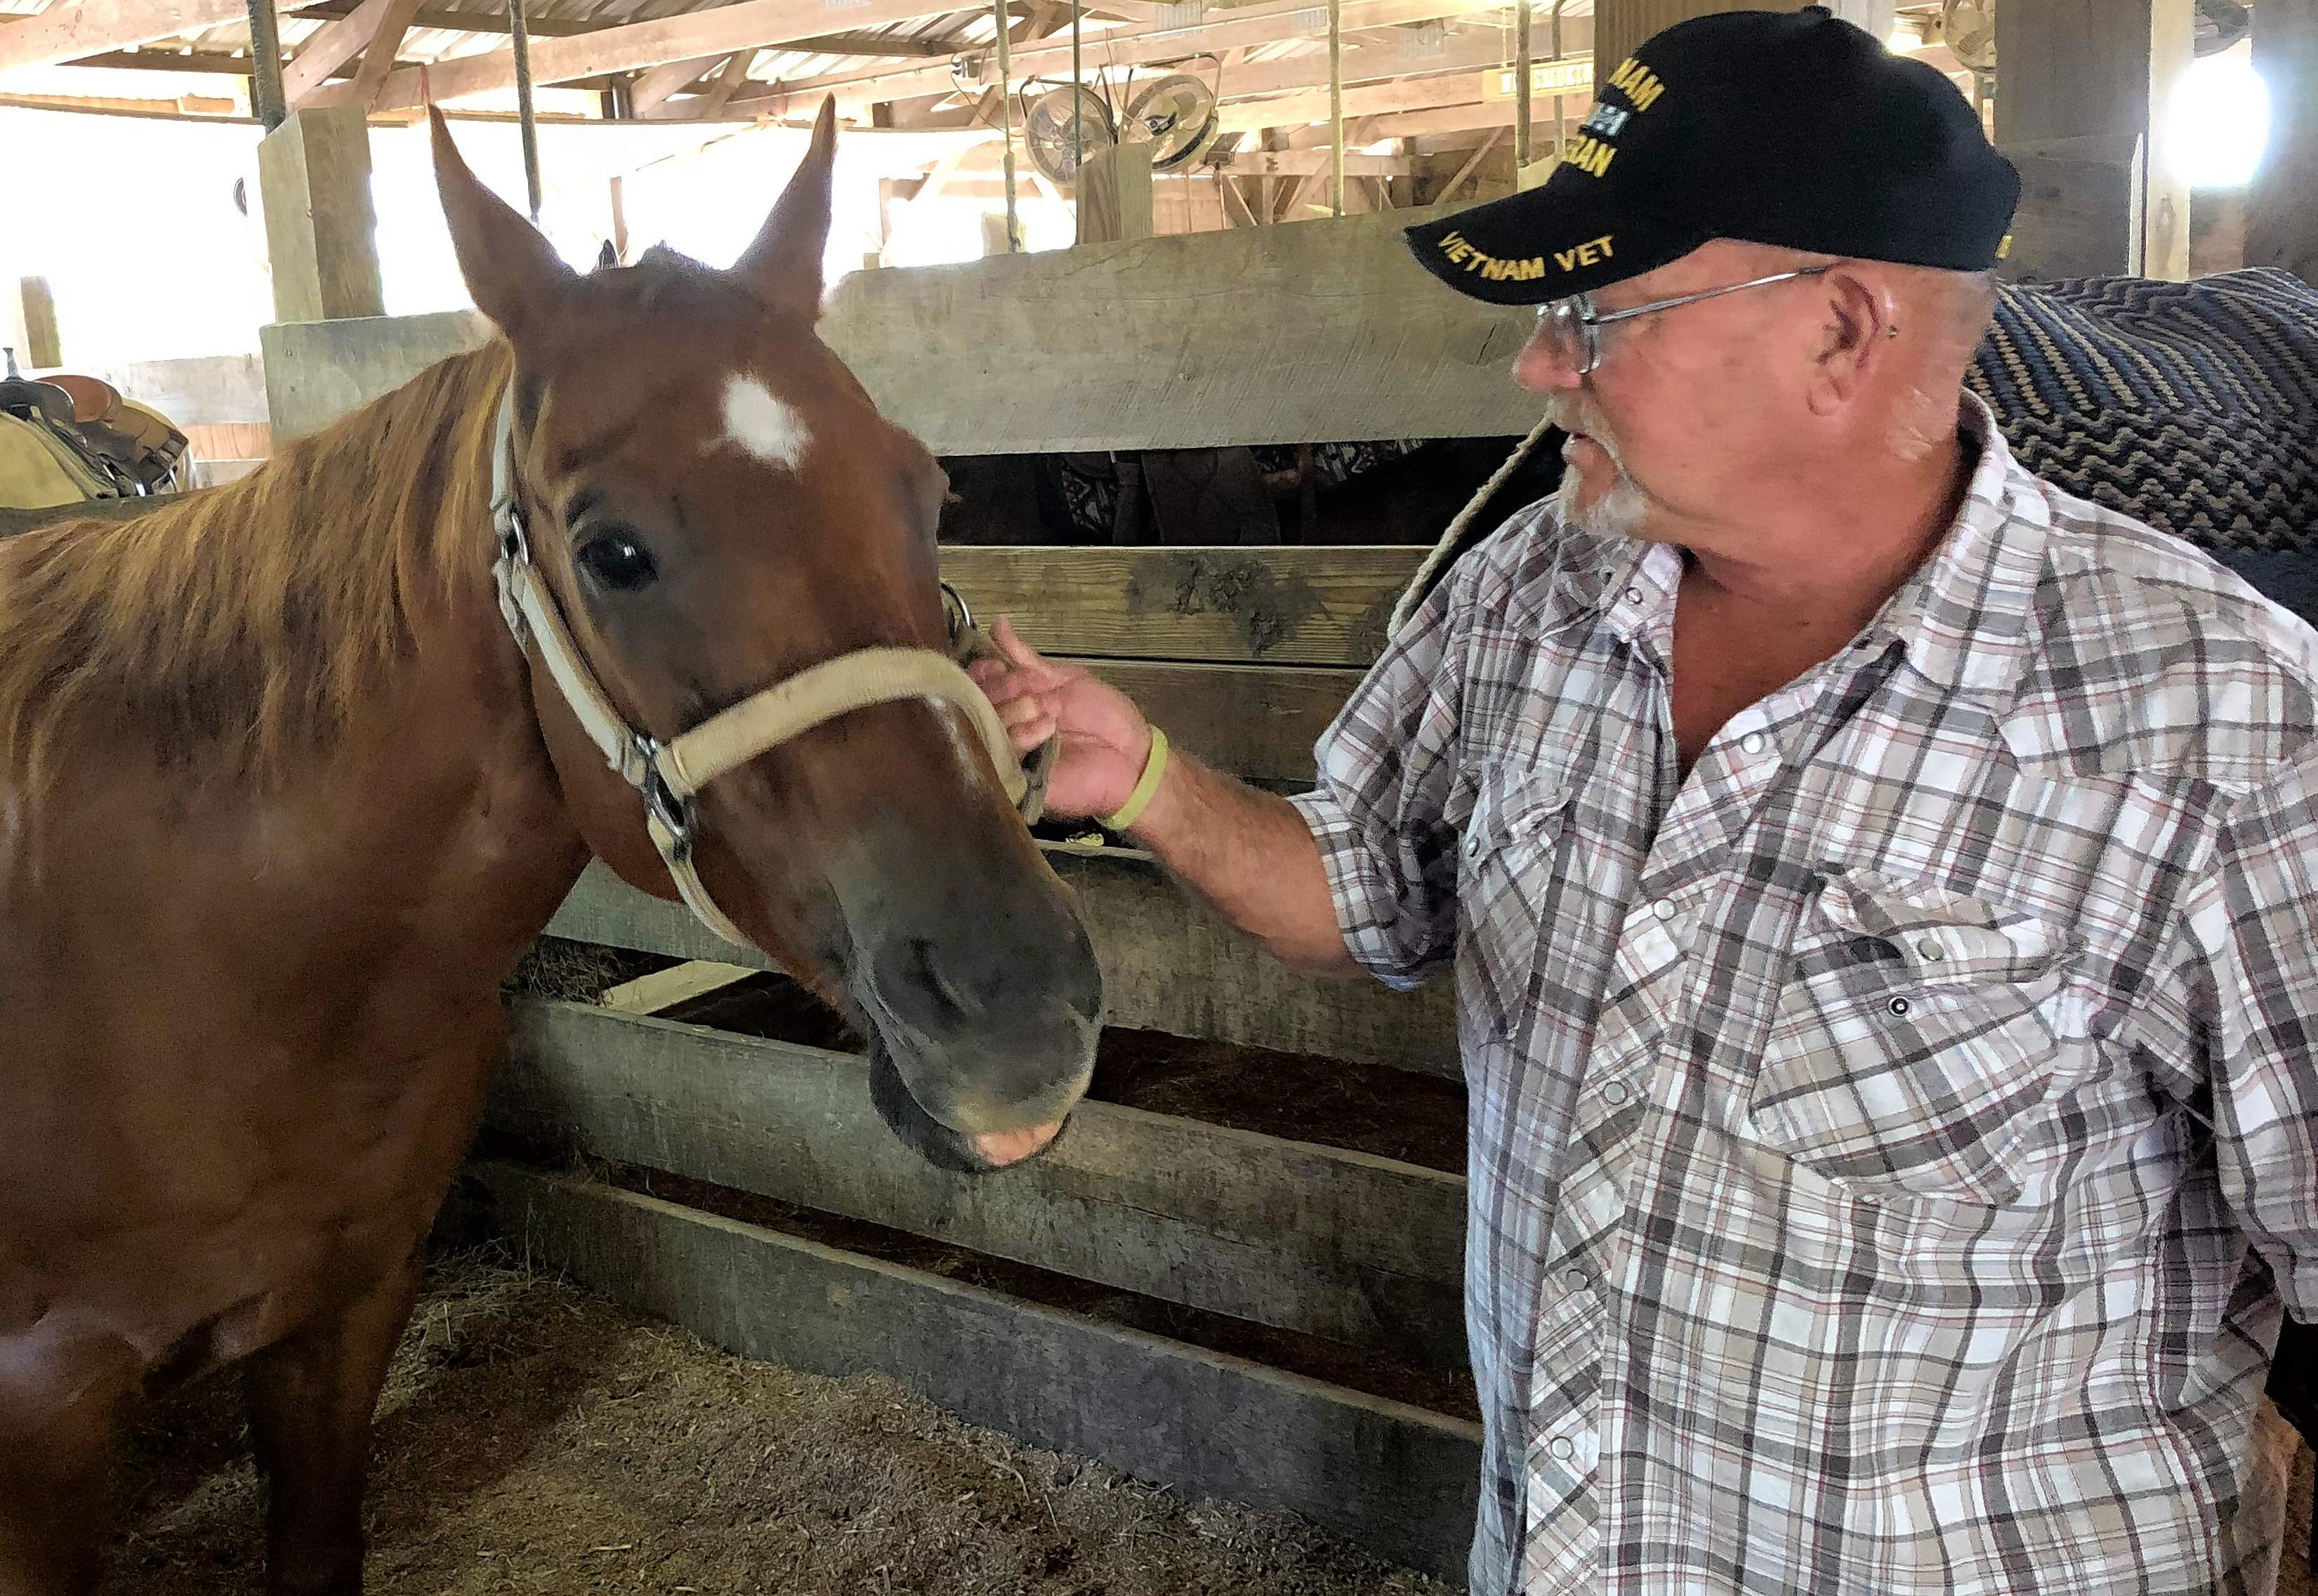 Gary Wyant of Benton gives some attention to Playboy, the horse he regularly rides at Specialized Equine Services and Therapeutic Riding. Wyant, a Vietnam veteran, is one of about a dozen vets who currently participate in the program.